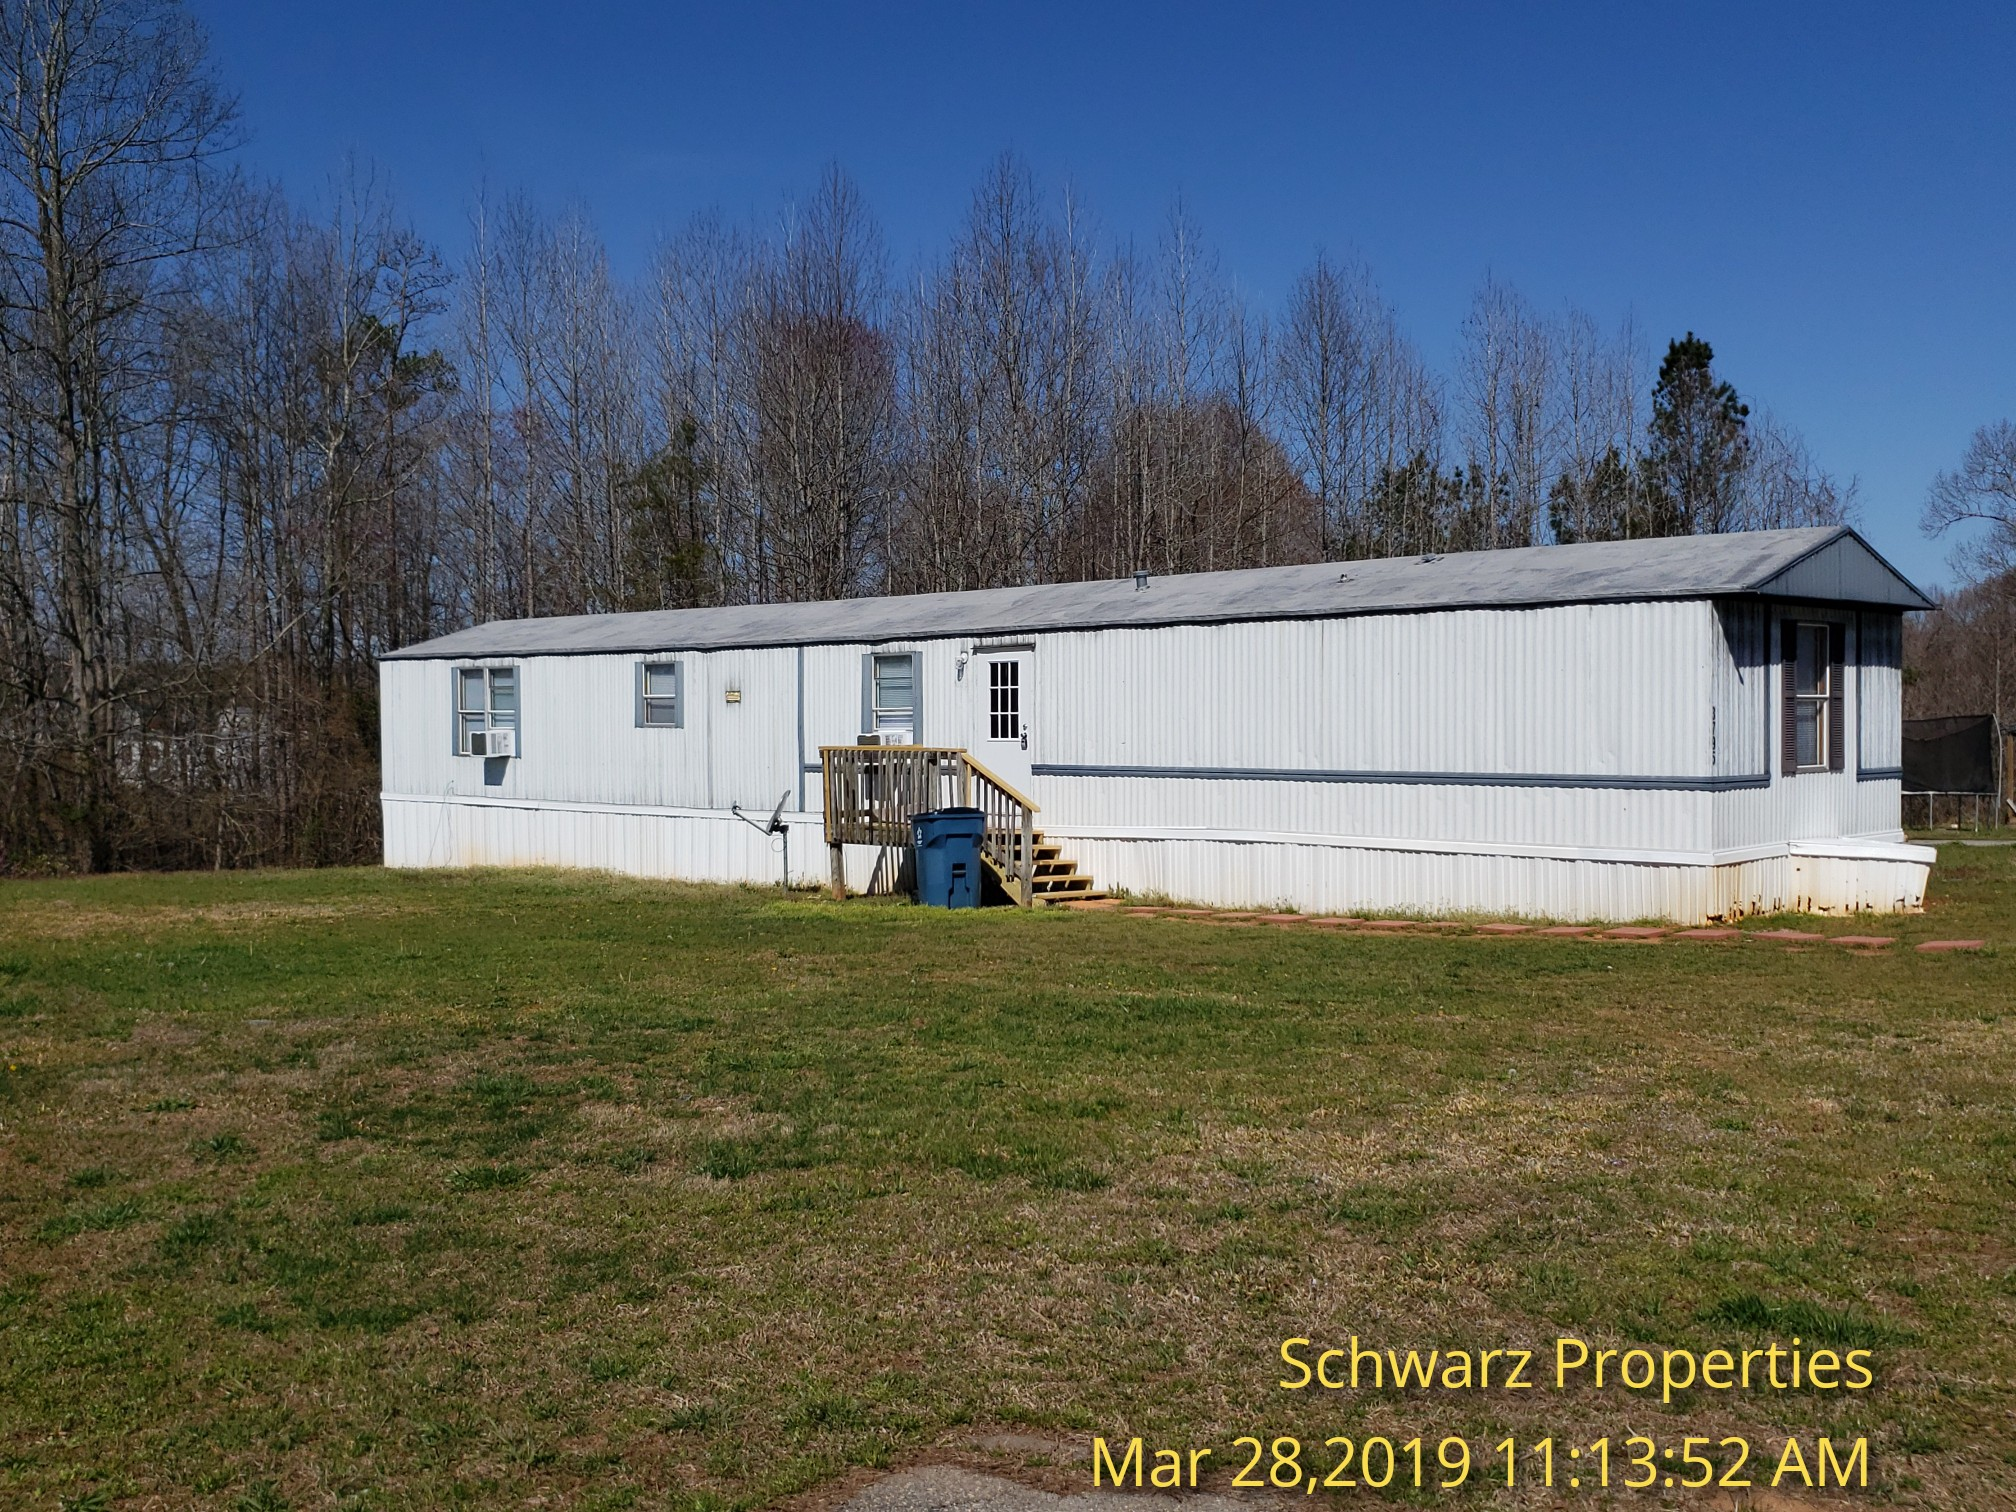 3795 Doveview St, Ramseur